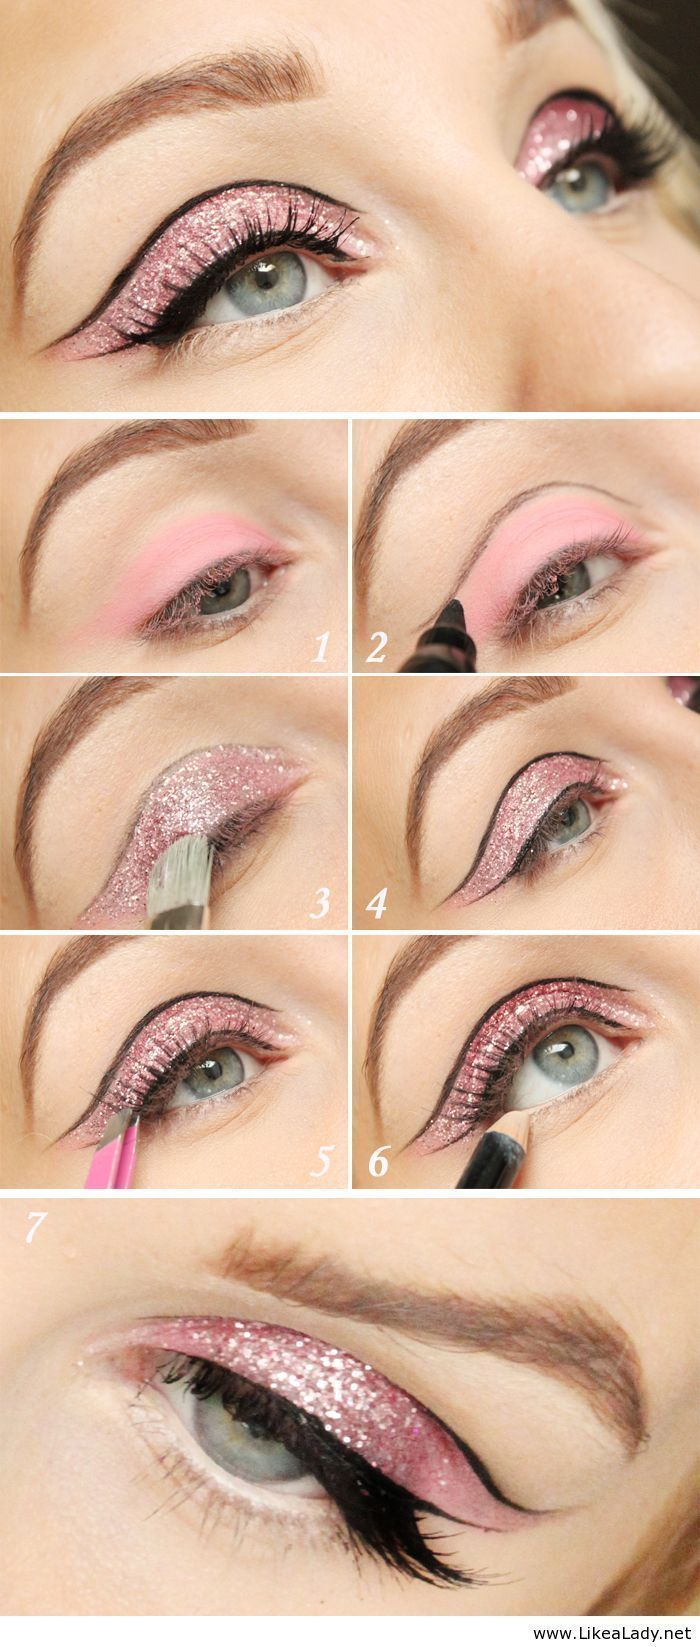 Makeup eye Pretty designs pictures advise dress for summer in 2019